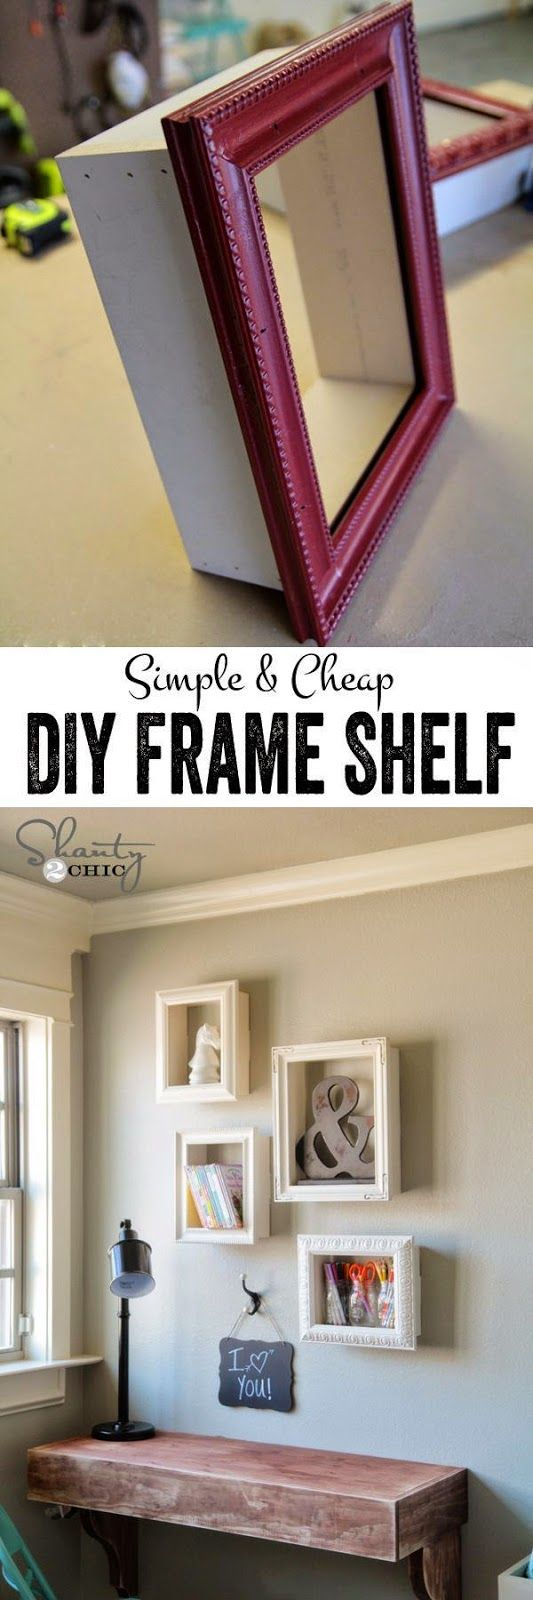 leather biker jackets for women Learn how to make these cute and simple DIY frame shelves  Such a great way to reuse old frames or to dress up frames